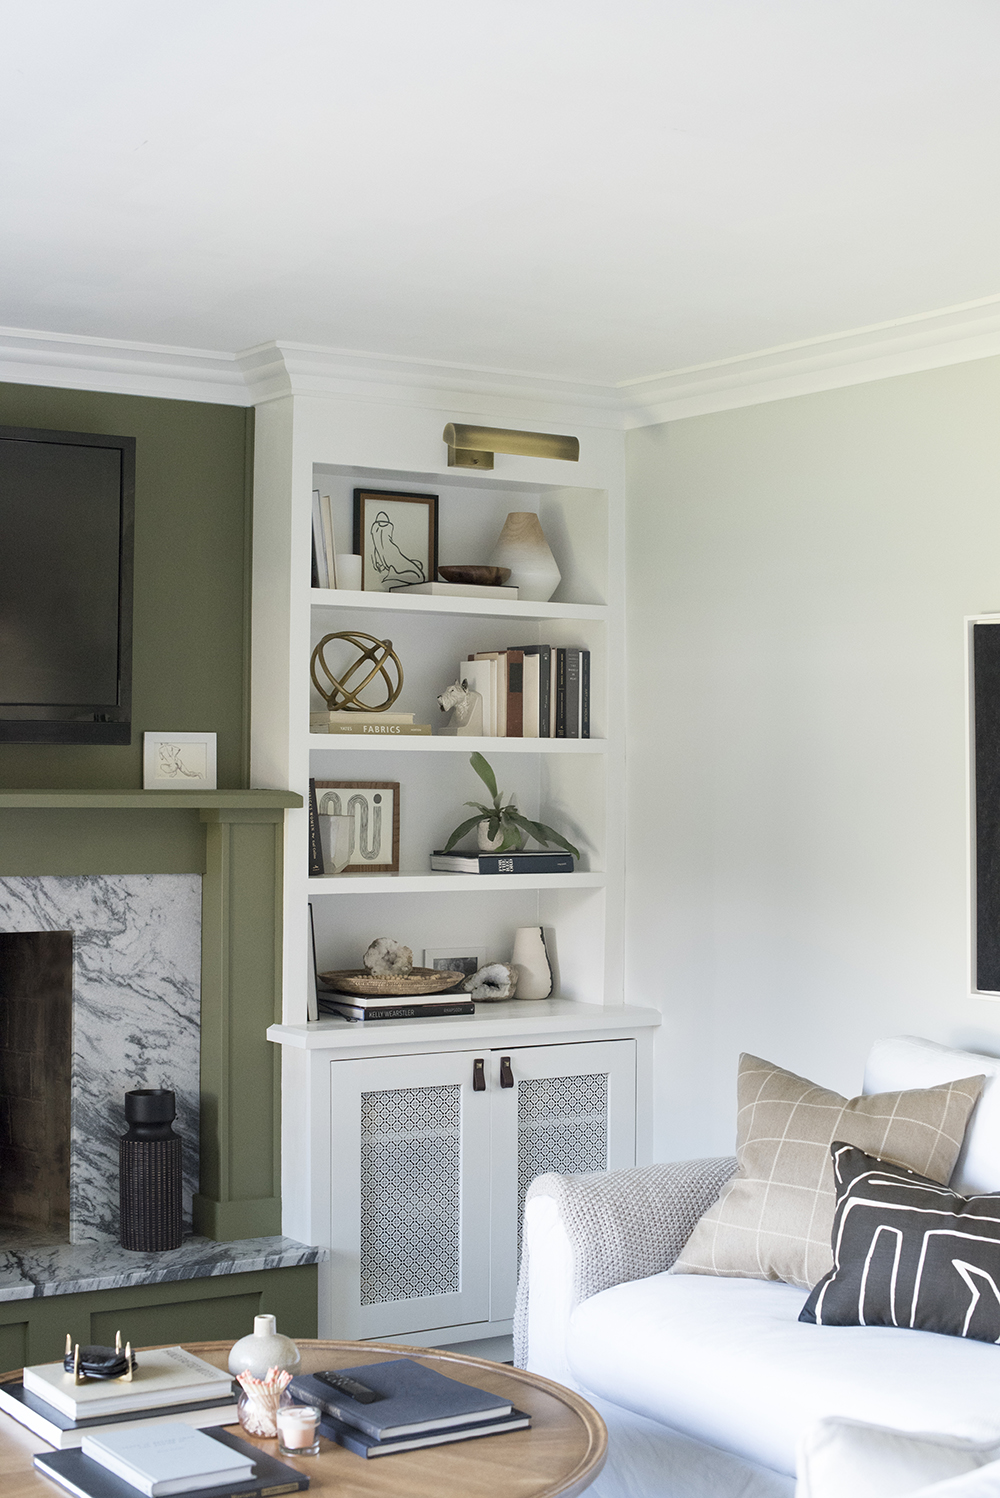 My Living Room Palette & Paint Colors - Room for Tuesday Blog